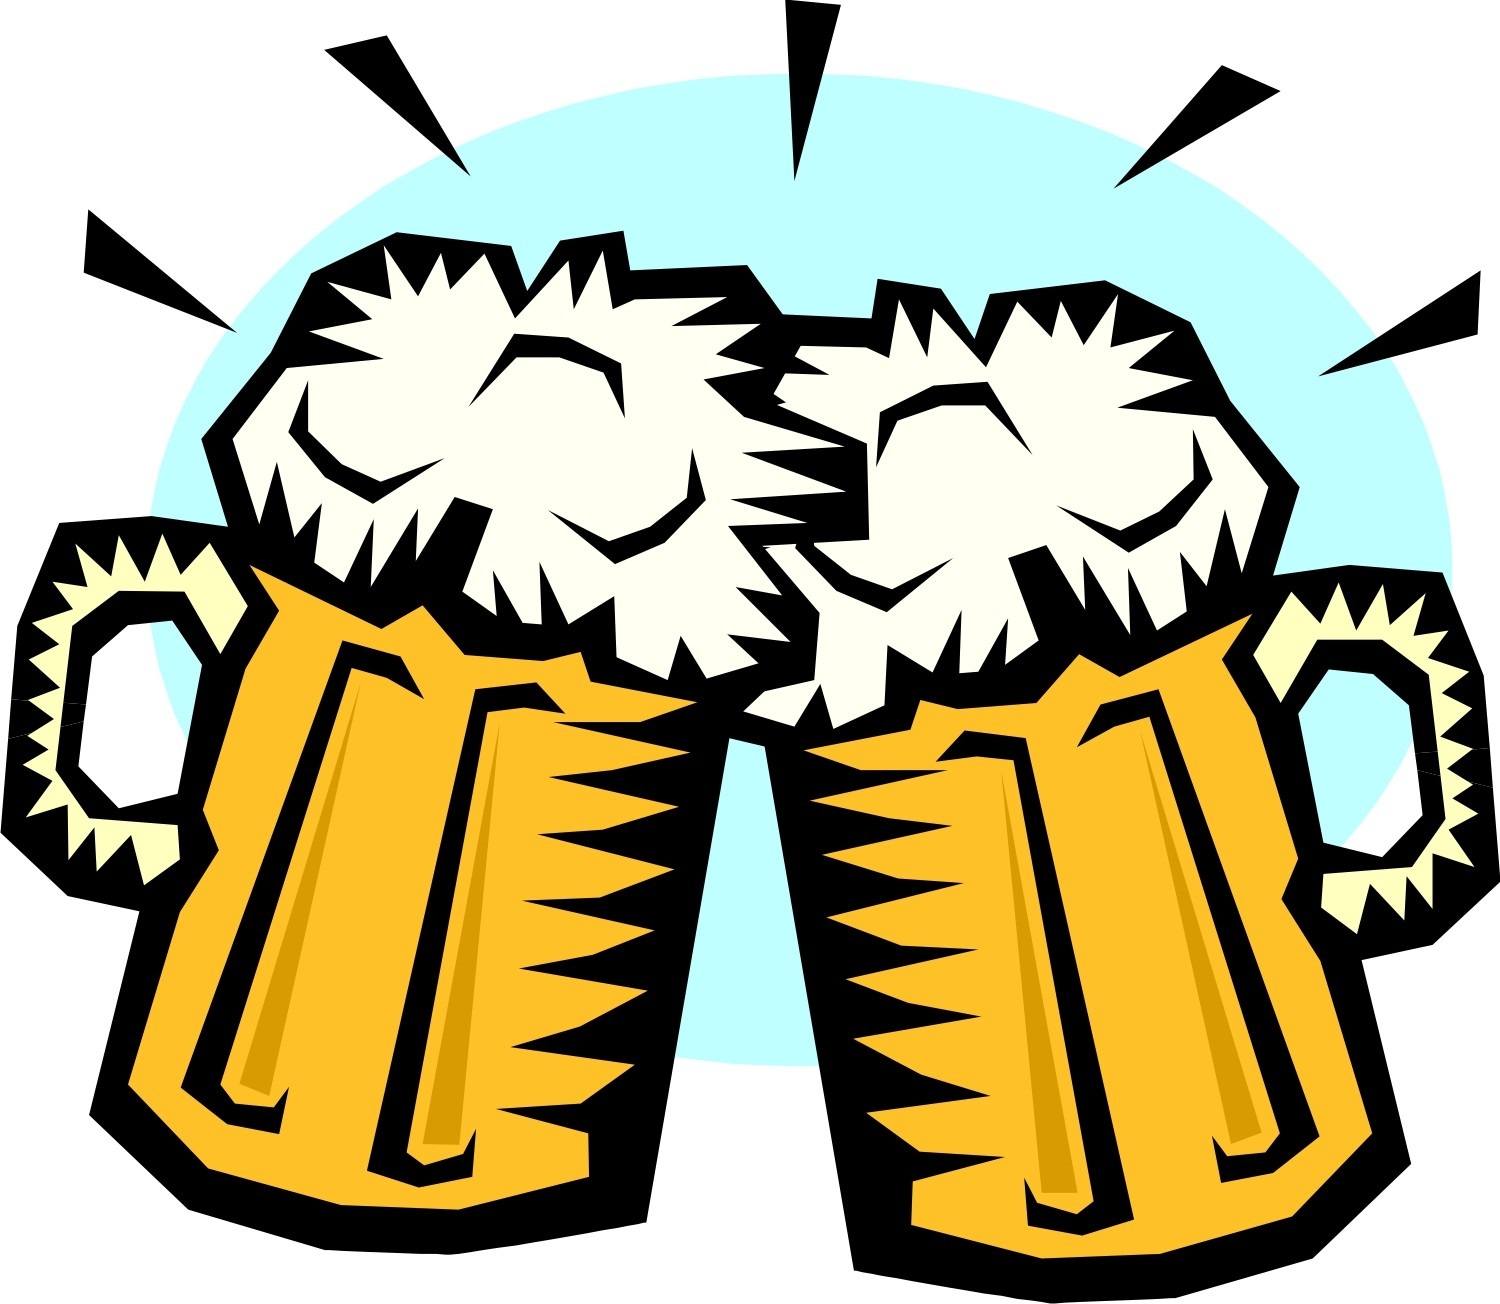 Clipart pubs picture Awesome Bar Clipart Design - Digital Clipa #250232 - Clipartimage.com picture